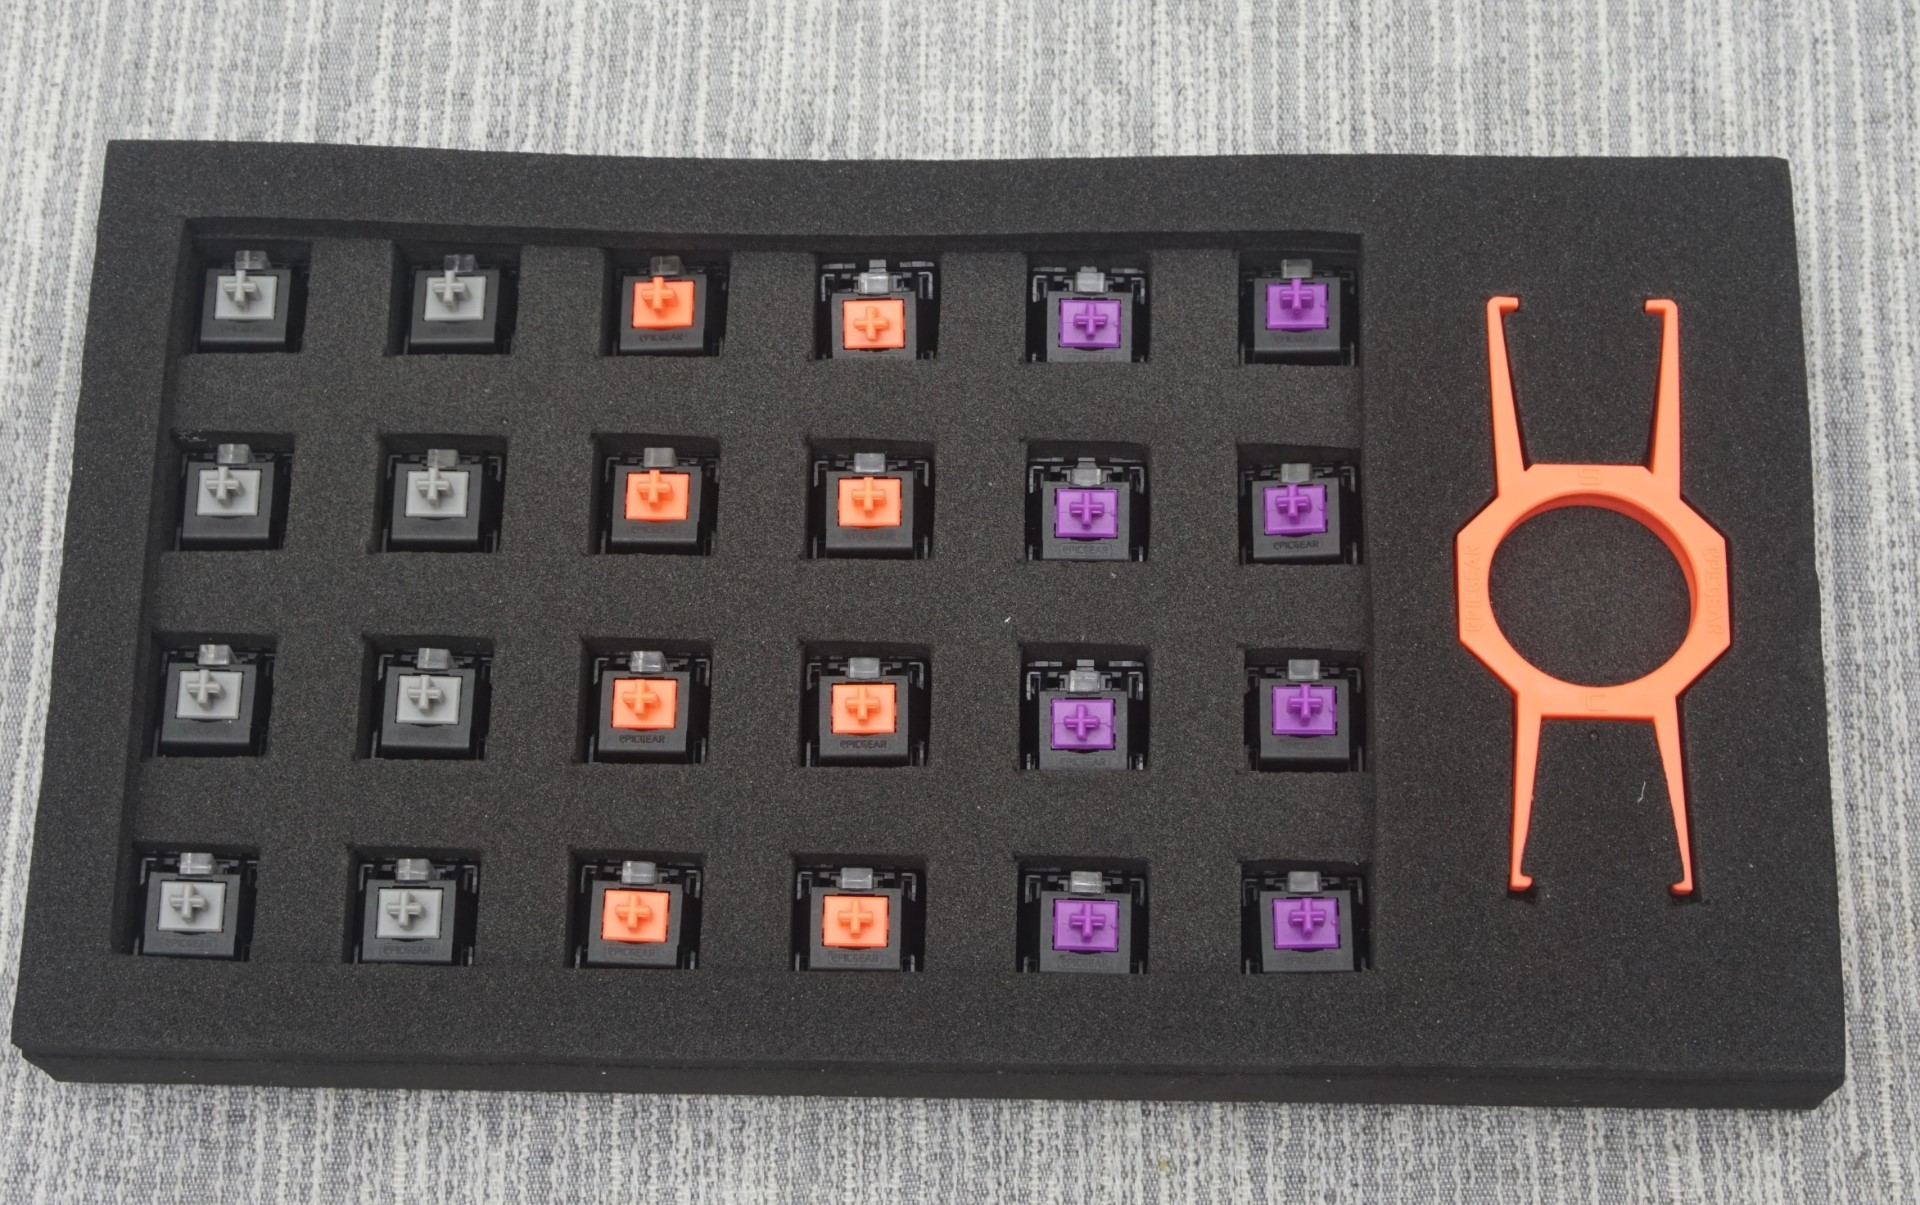 The Epicgear Defiant Mechanical Gaming Keyboard Review